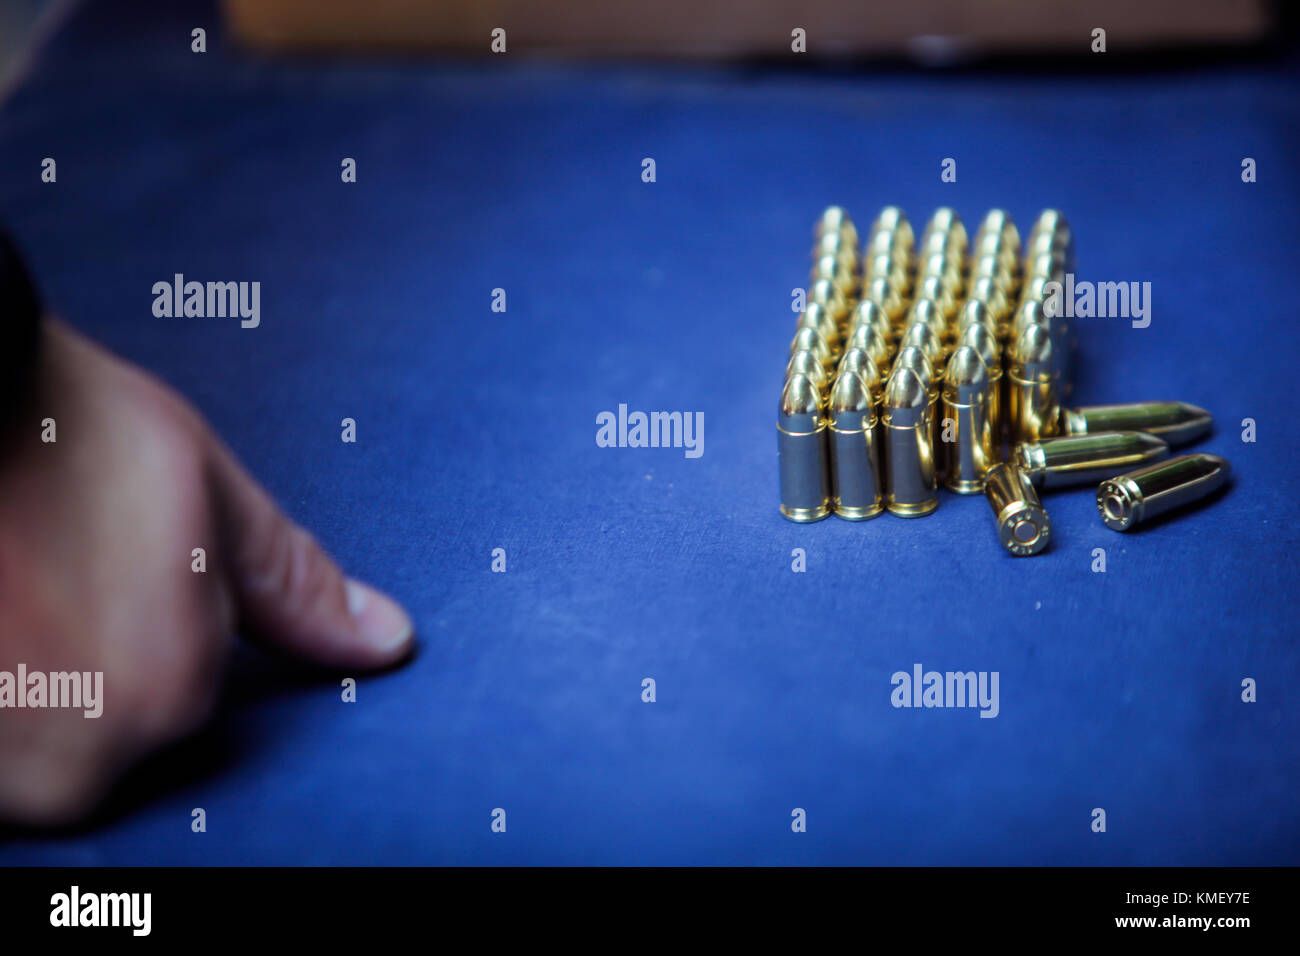 9 mm ammunition on display on a shooting range - Stock Image